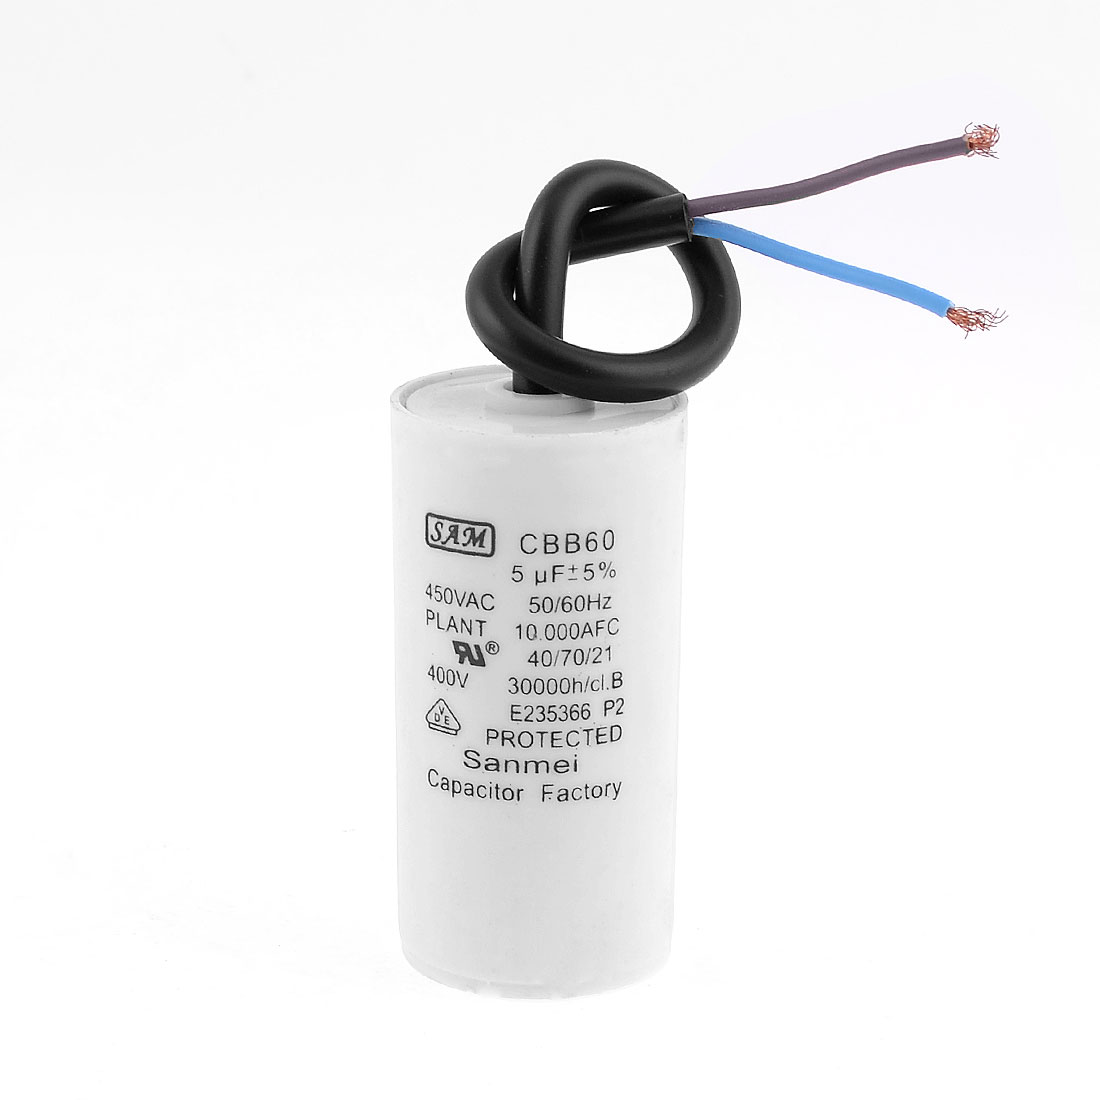 CBB60 450VAC 5uF Wired Motor Running Capacitor for Air Conditioner